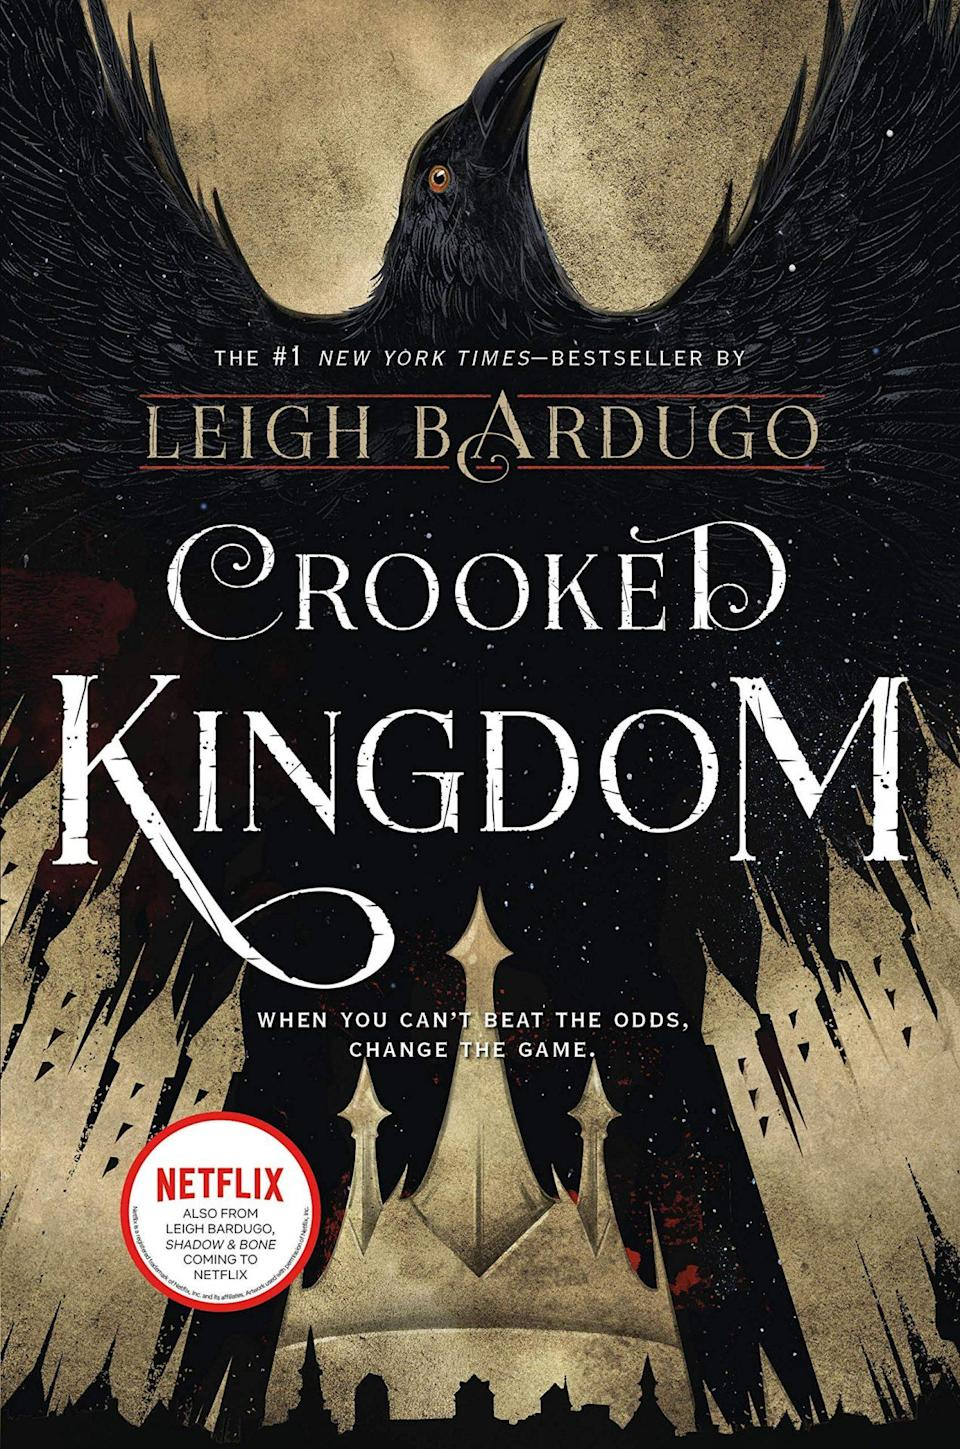 The cover of Crooked Kingdom shows a crow rising